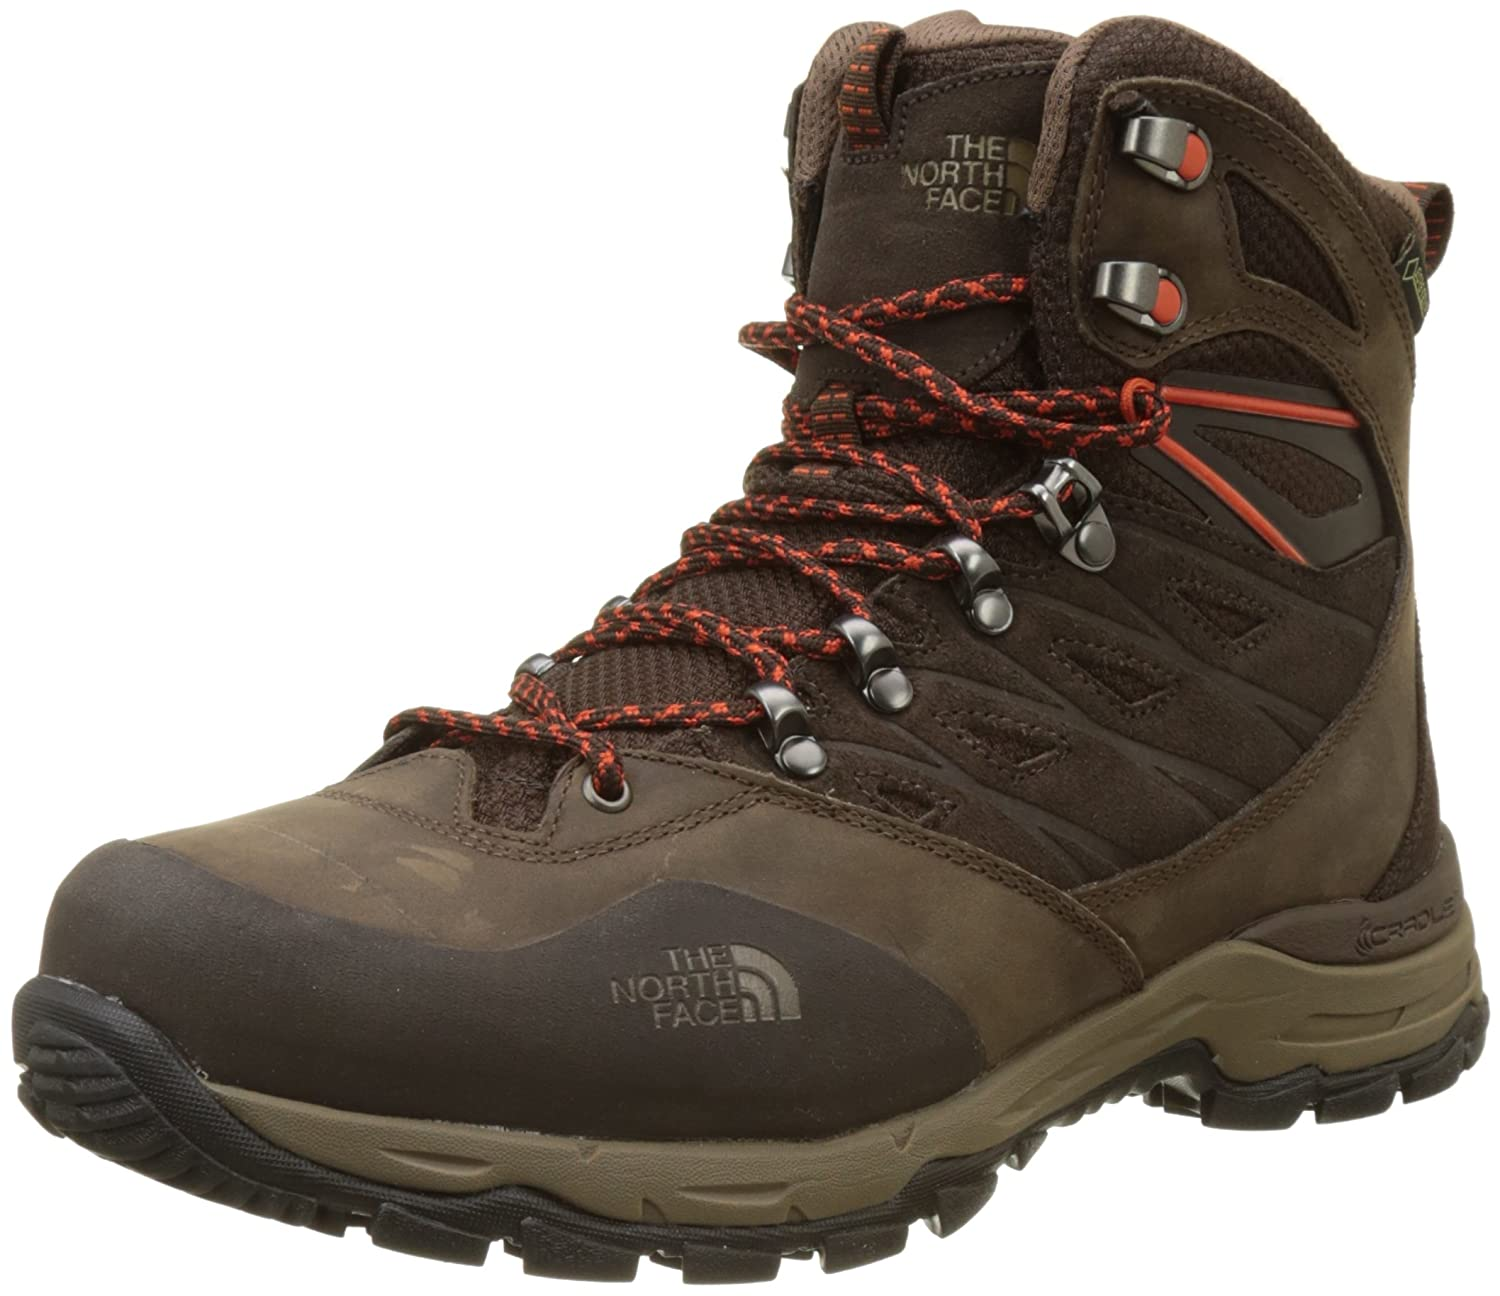 TALLA 40 EU. The North Face M Hedgehog Trek GTX, Botas de Senderismo para Hombre